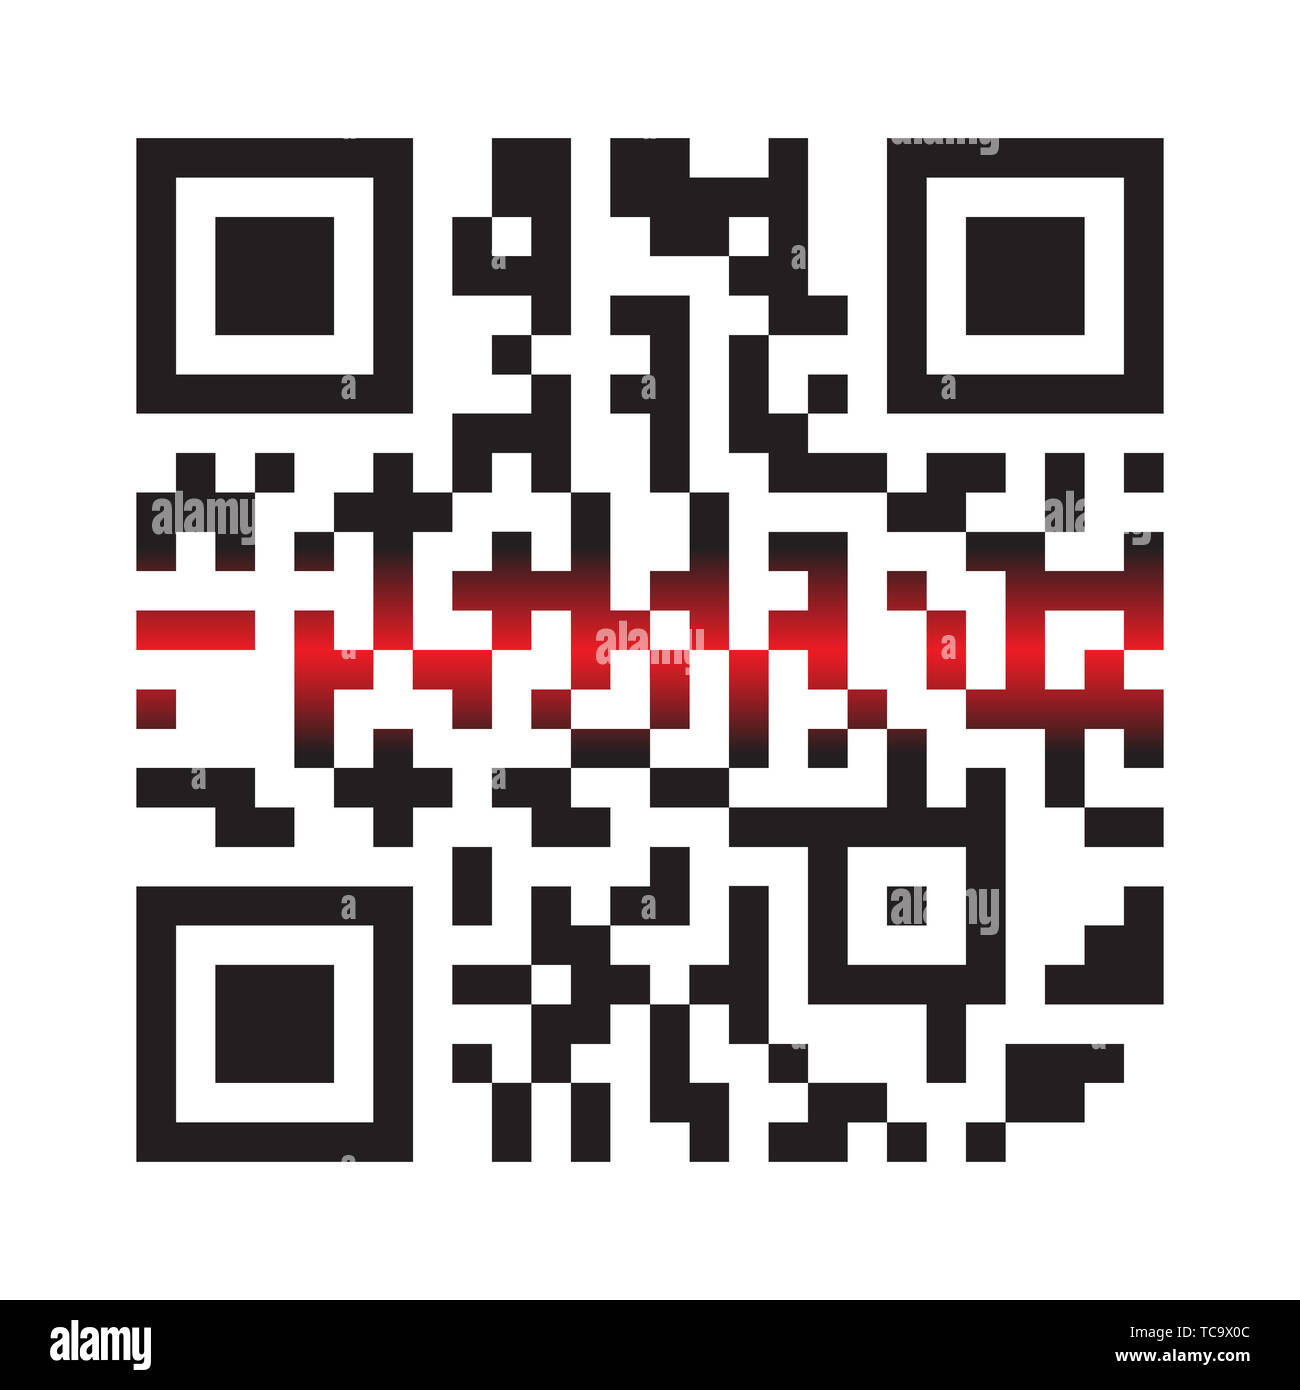 Modern Simple QR Code With Laser Light in Vector Illustration Isolated on White Background. Electronic, Digital Technology, Marketing, Internet Concep - Stock Image